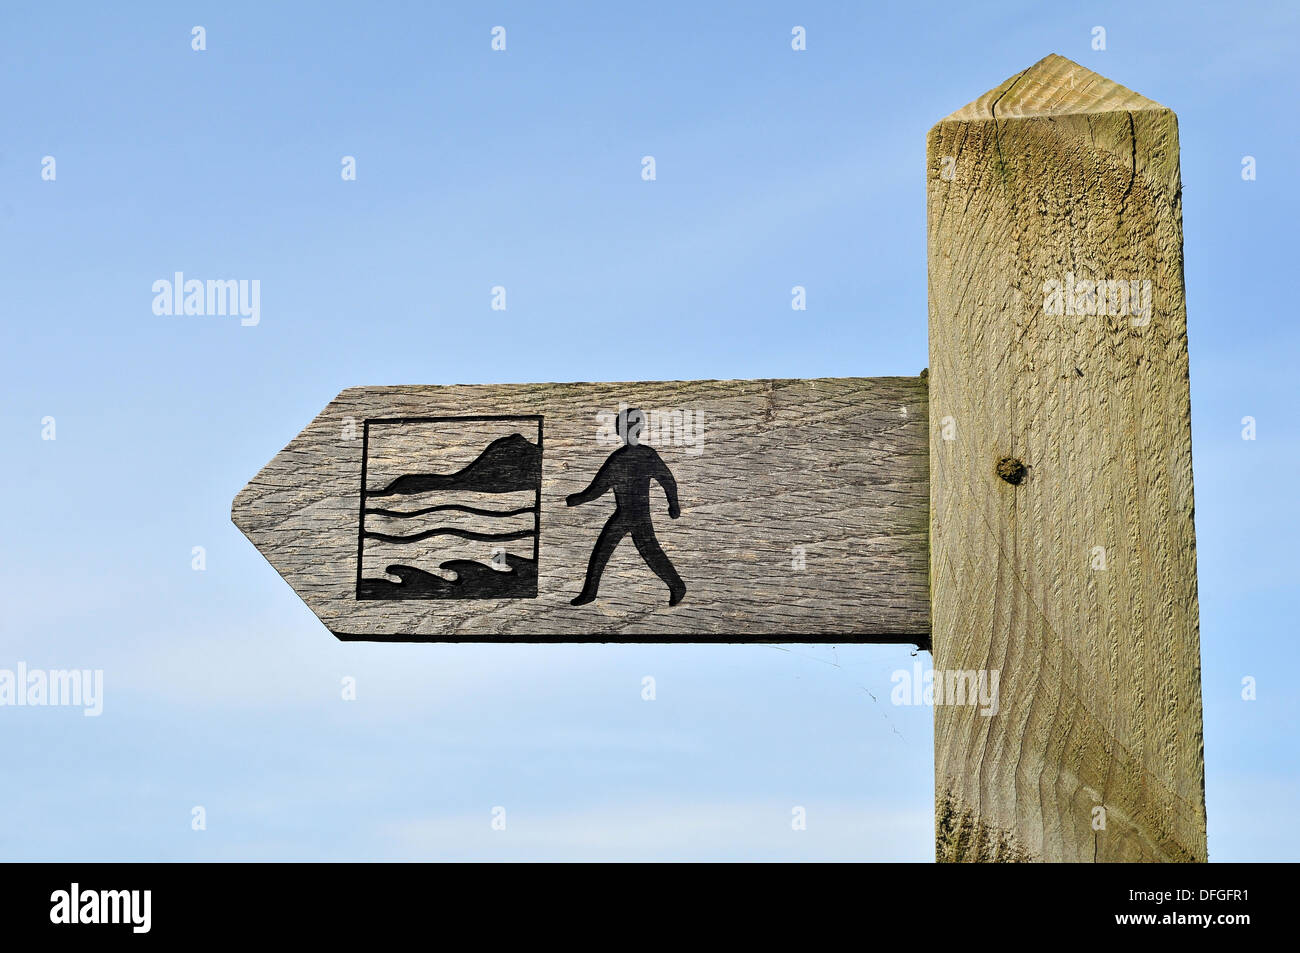 Finger signpost showing the route of the Wales Coast Path near Aberystwyth, Ceredigion, Wales, UK - Stock Image